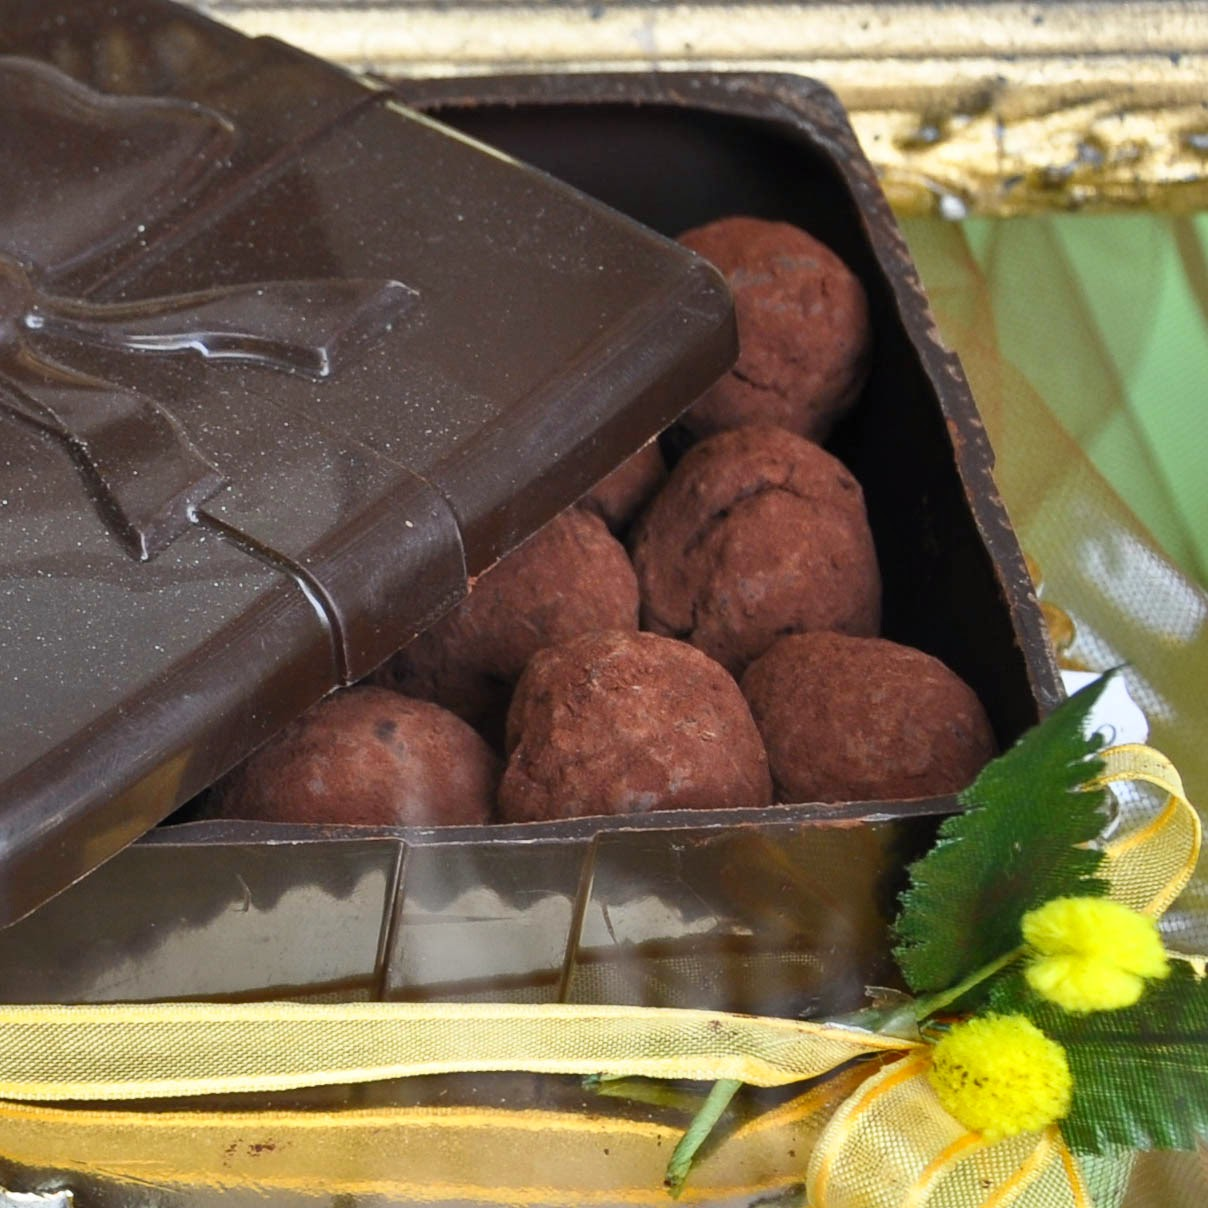 Chocolate truffles in a chocolate box by Pasticceria Venezia in Vicenza